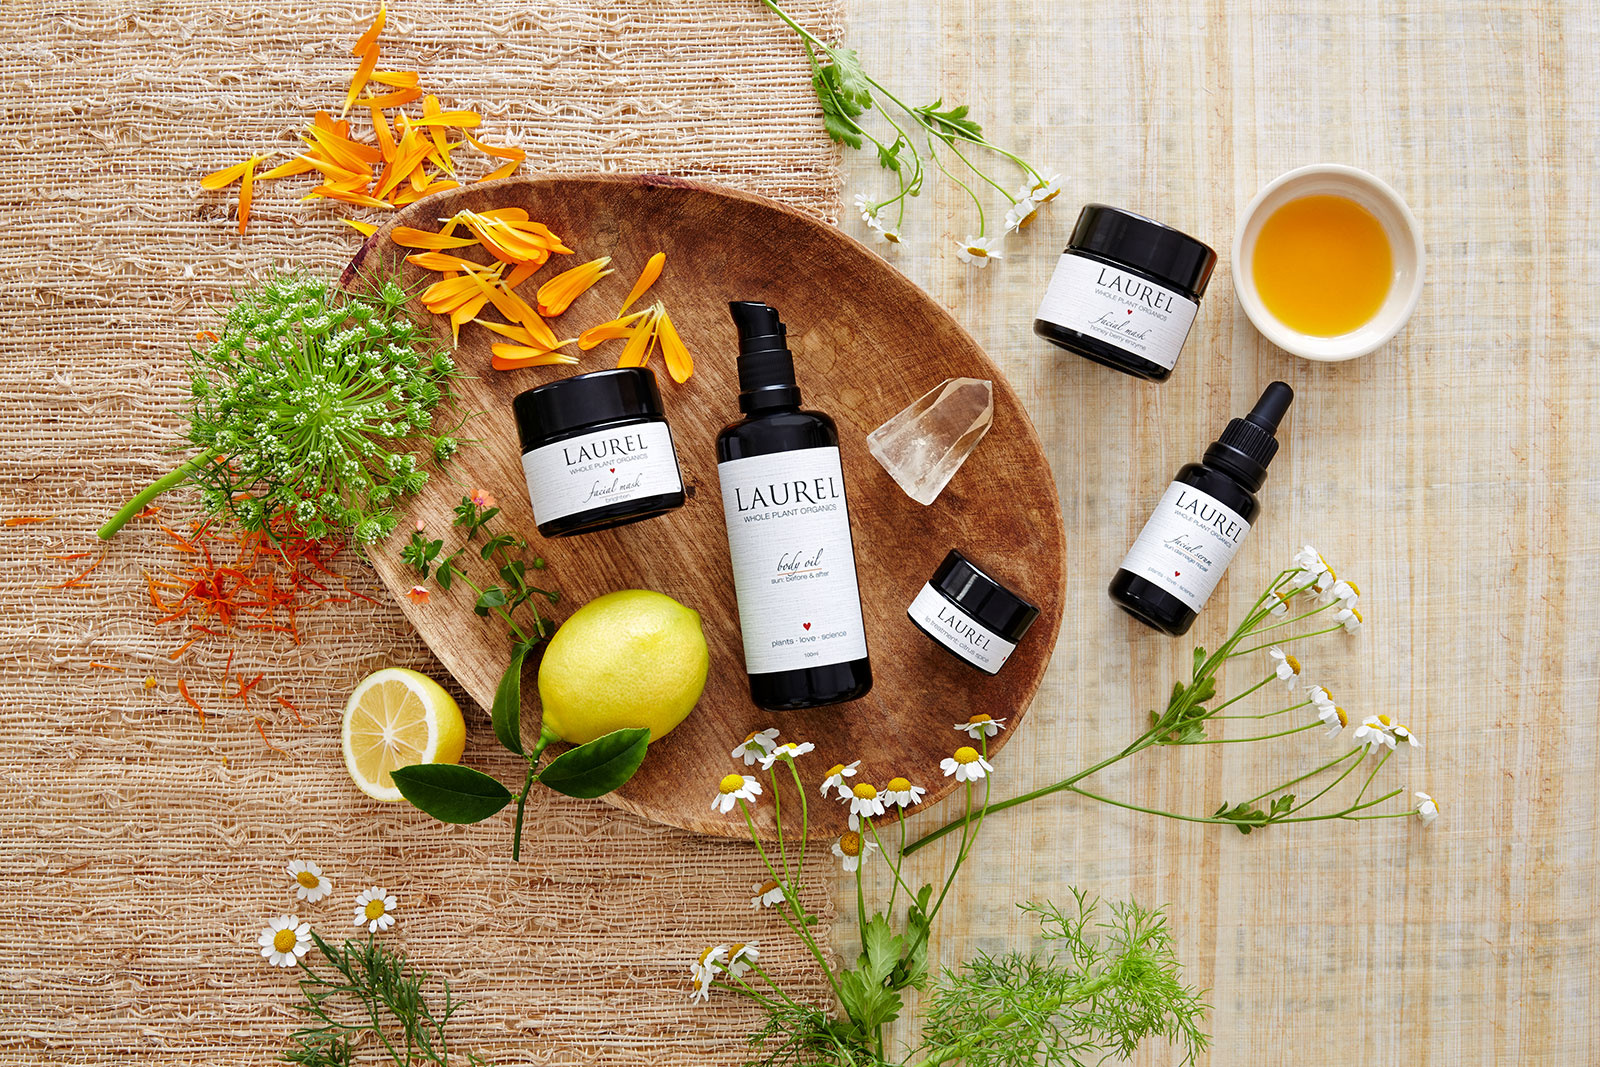 Laurel Organic Skin Care Products  | Dovis Bird Agency Photography